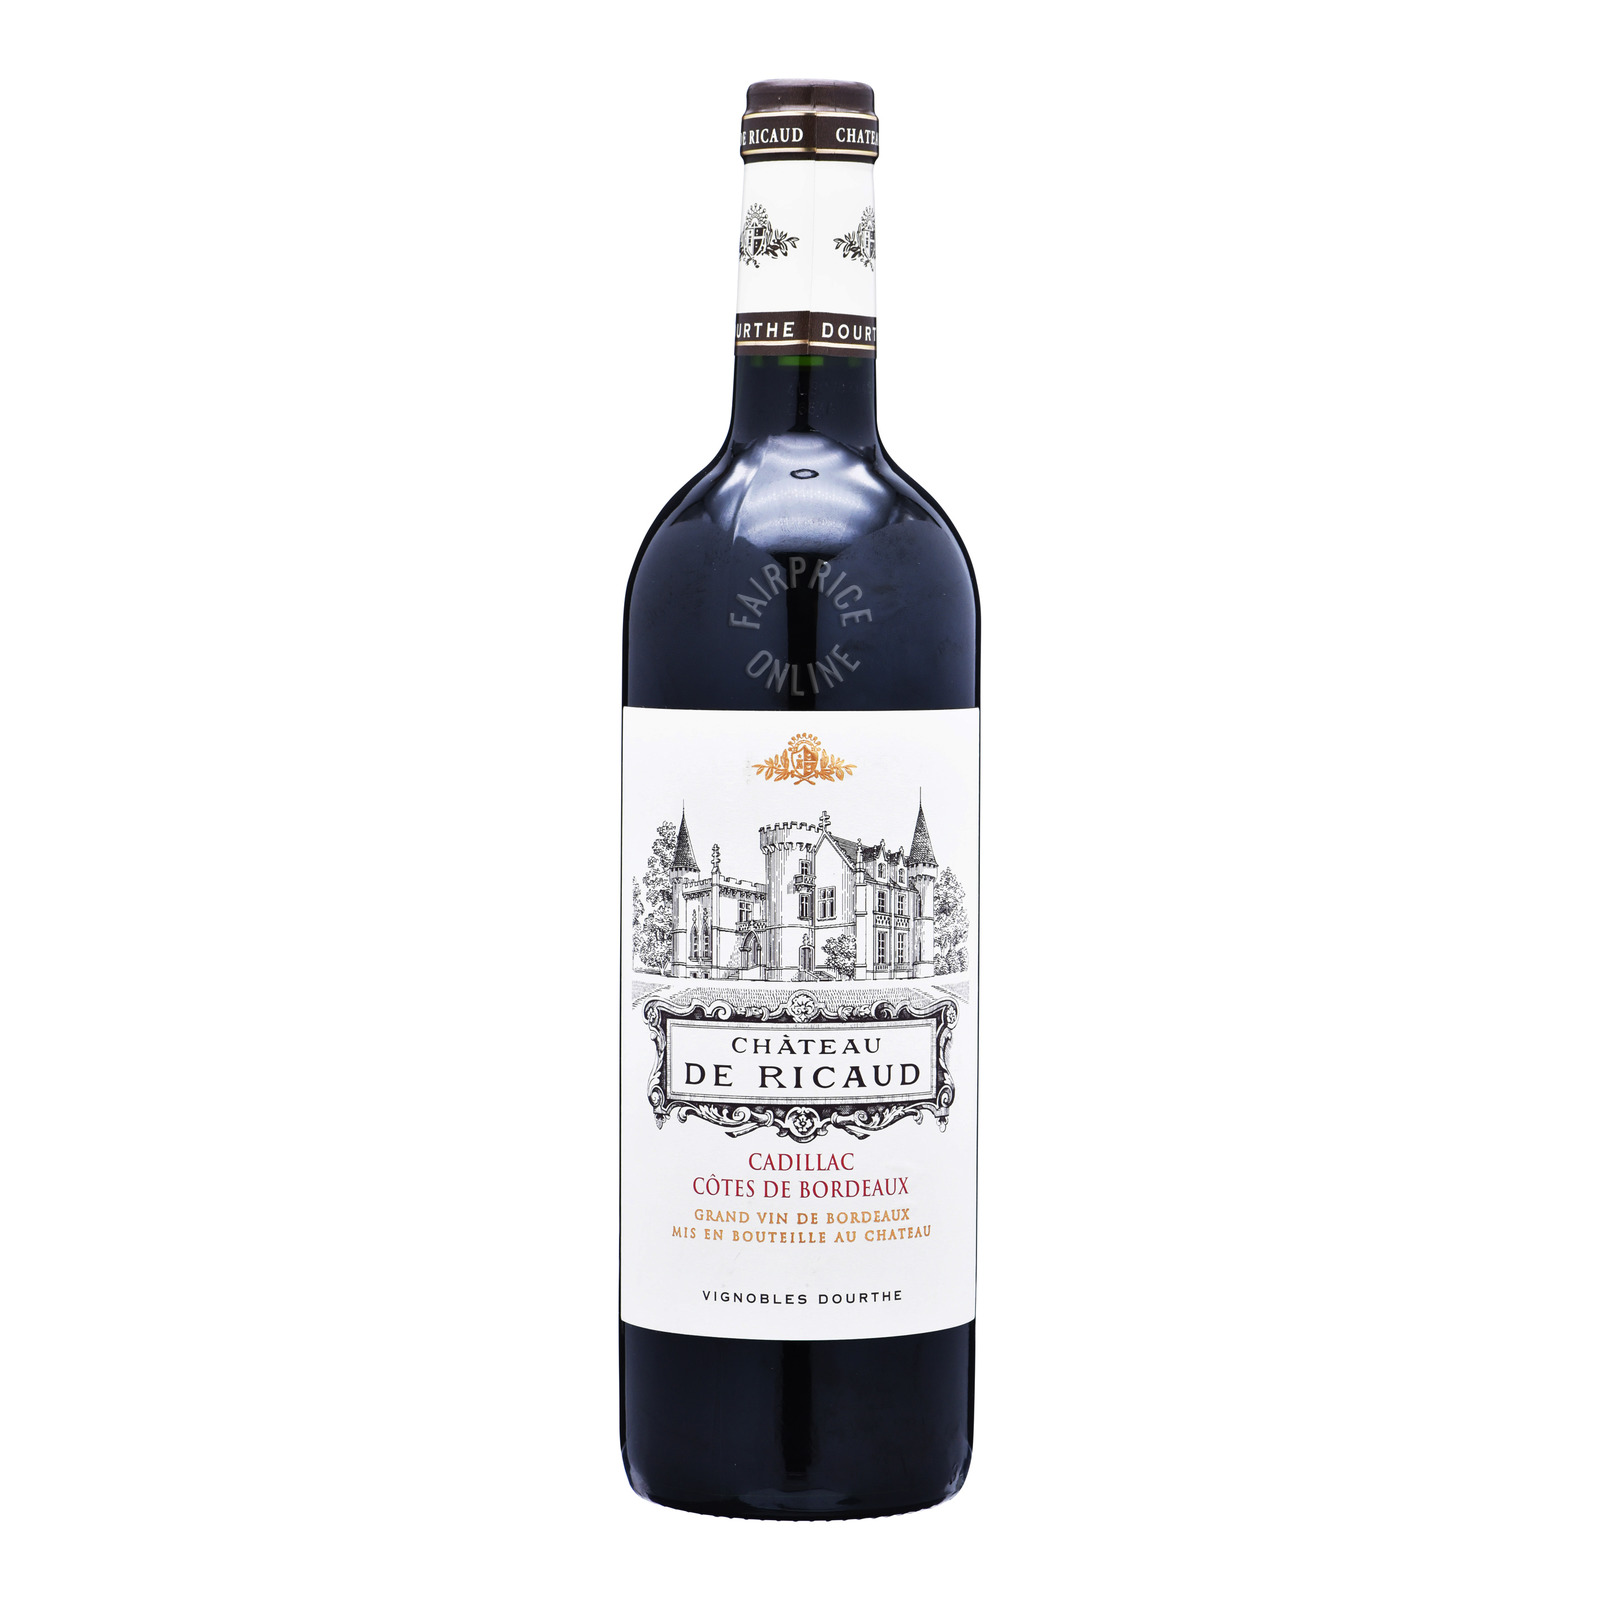 Chateau De Ricaud Red Wine - Cadillac Cotes De Bordeaux